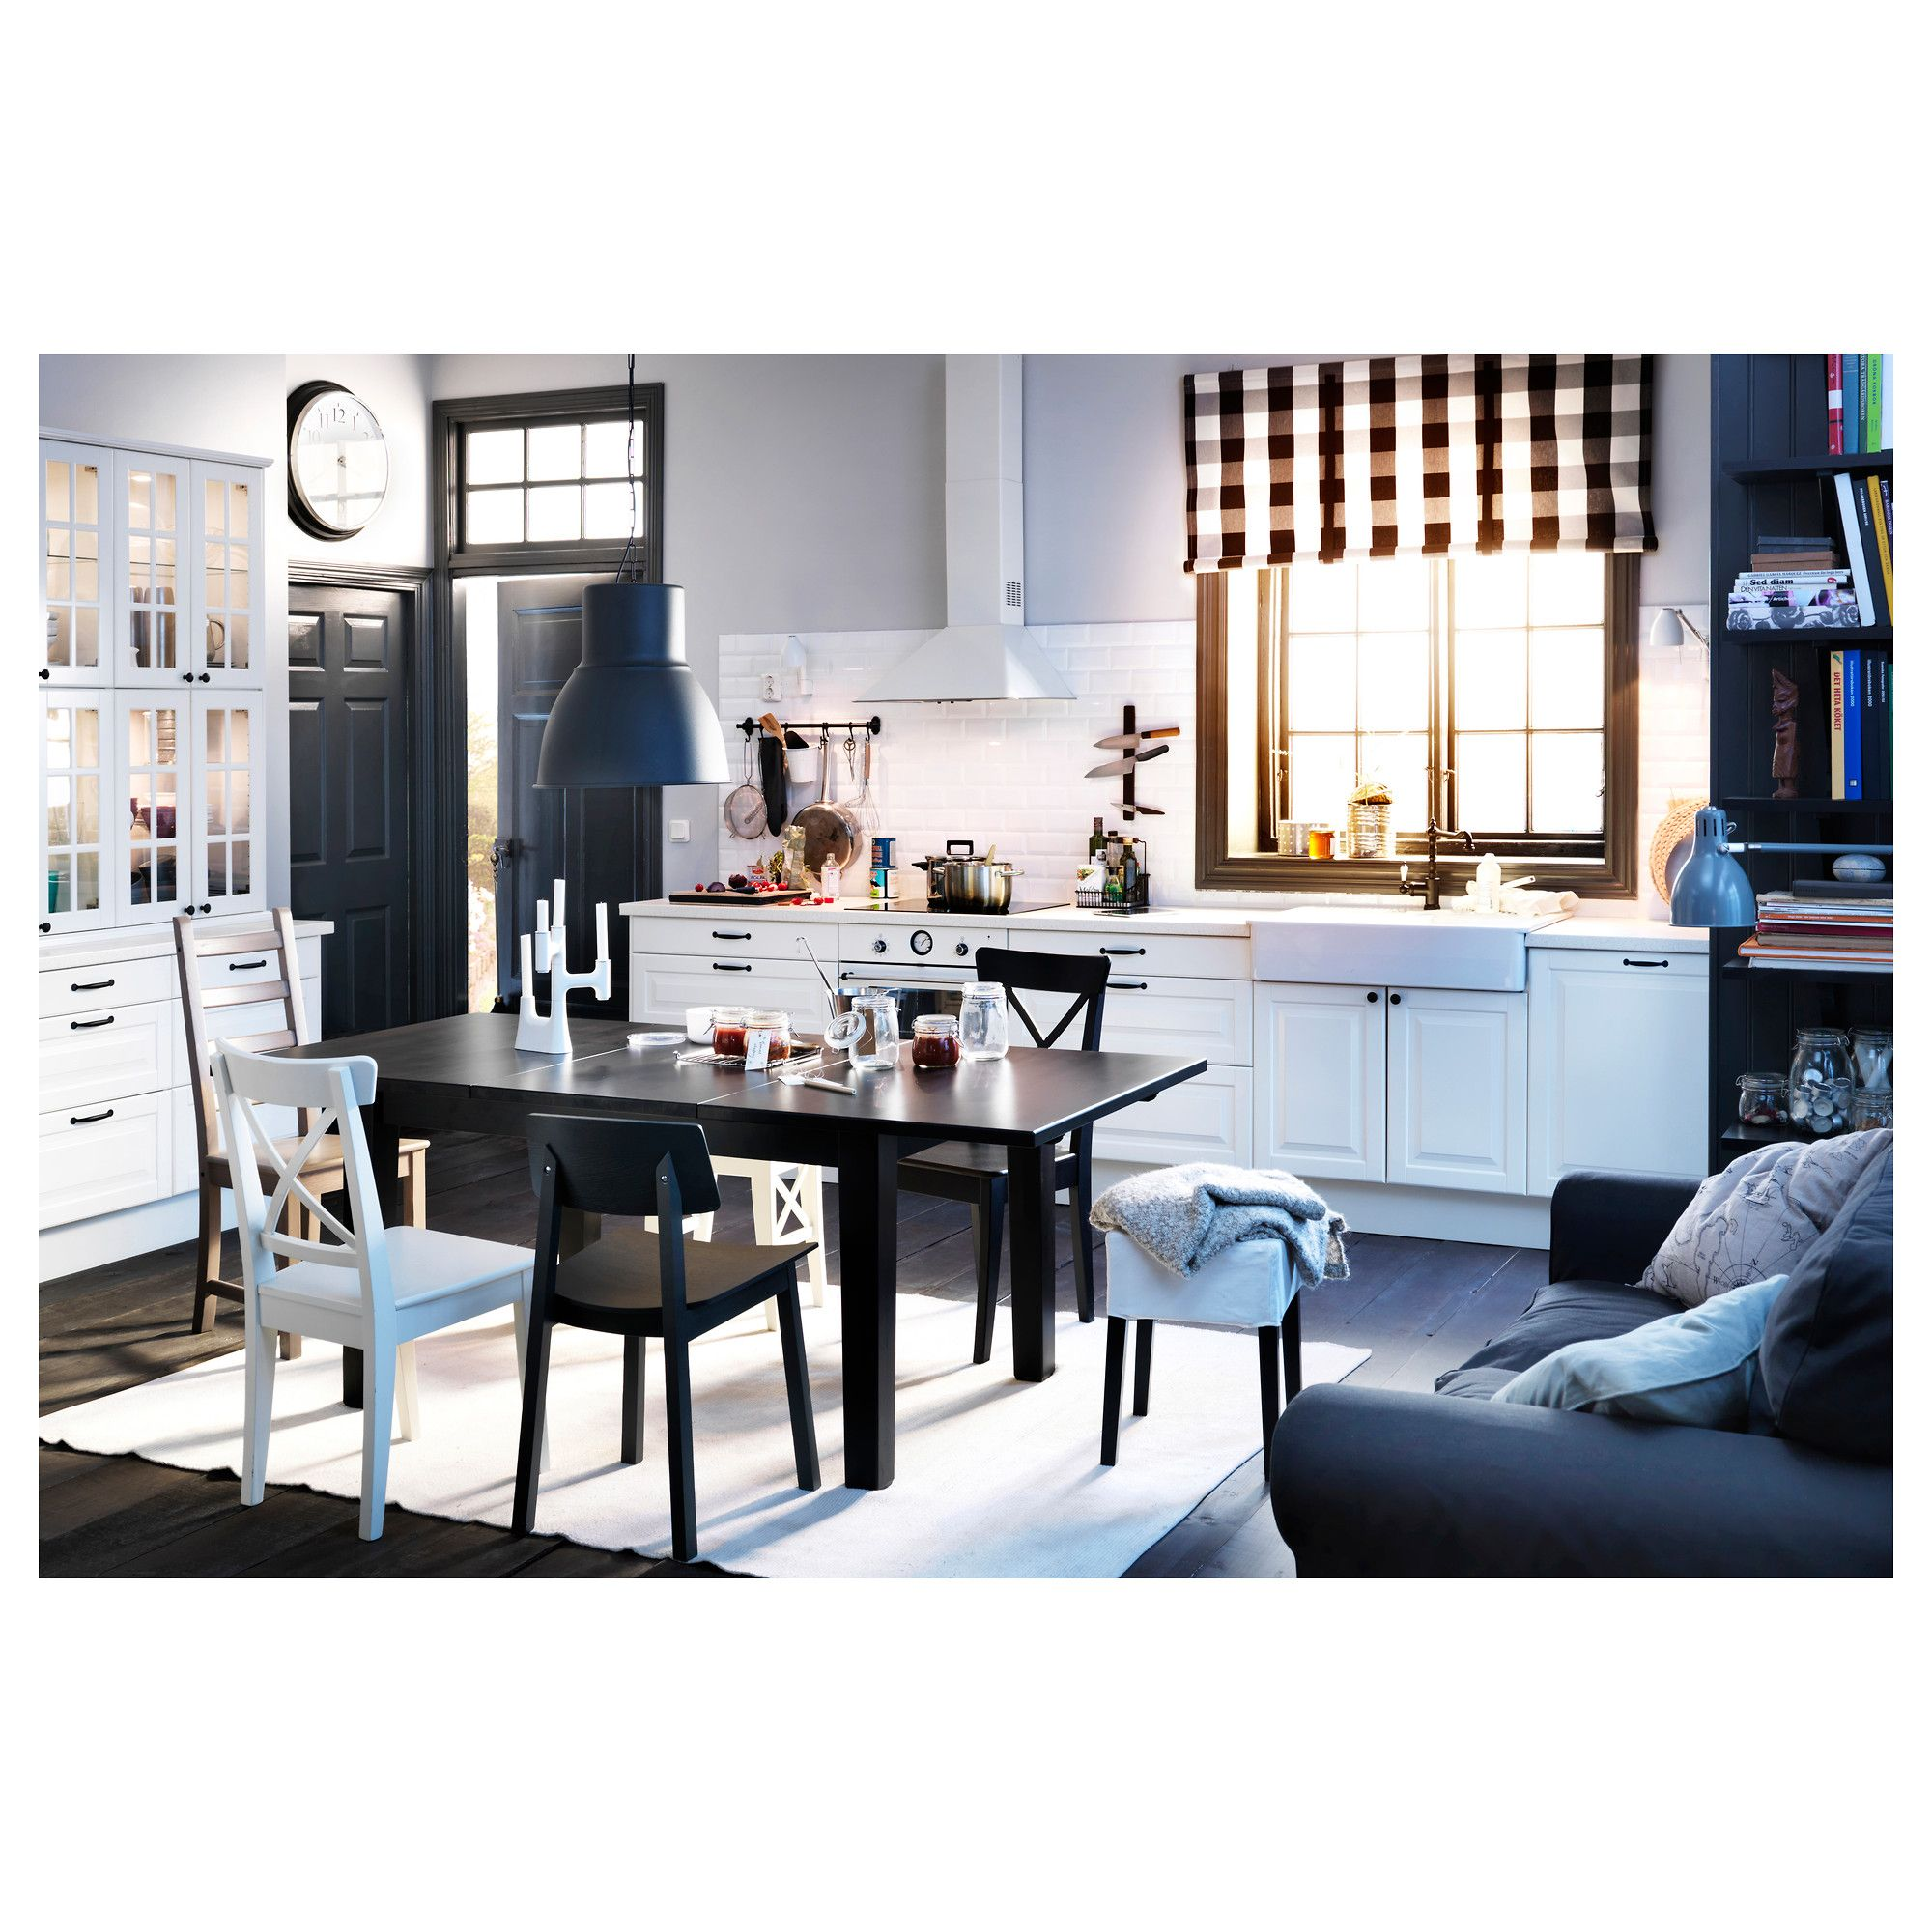 Ikea Kitchen Planner Usa: Furniture And Home Furnishings